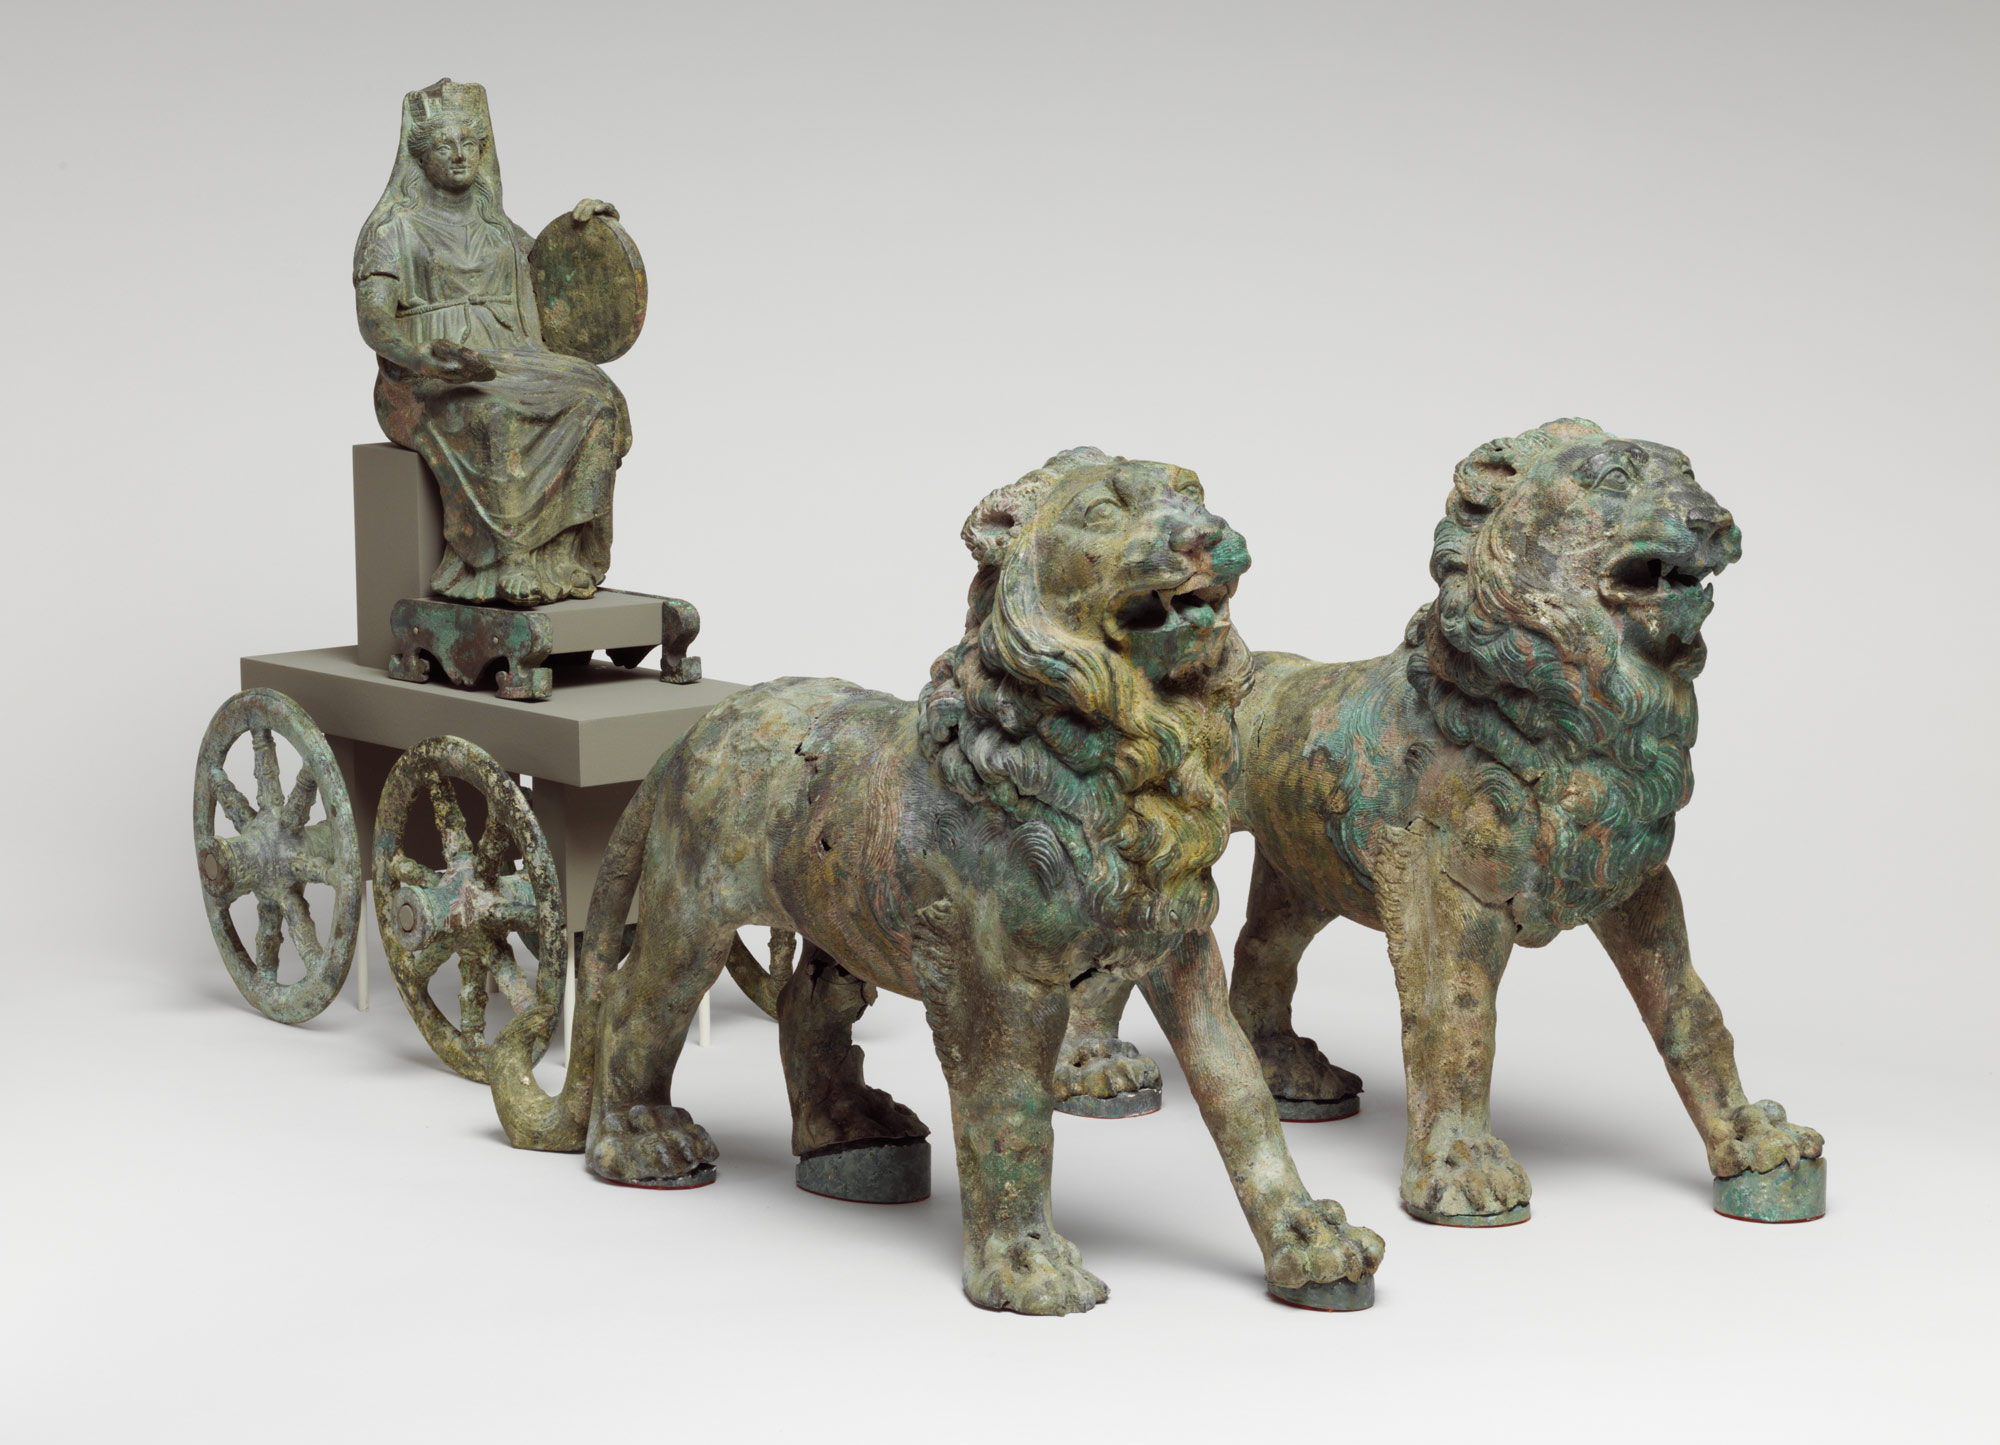 Bronze statuette of Cybele on cart drawn by lions, 2nd half of 2nd century A.D. [www.metmuseum.org]